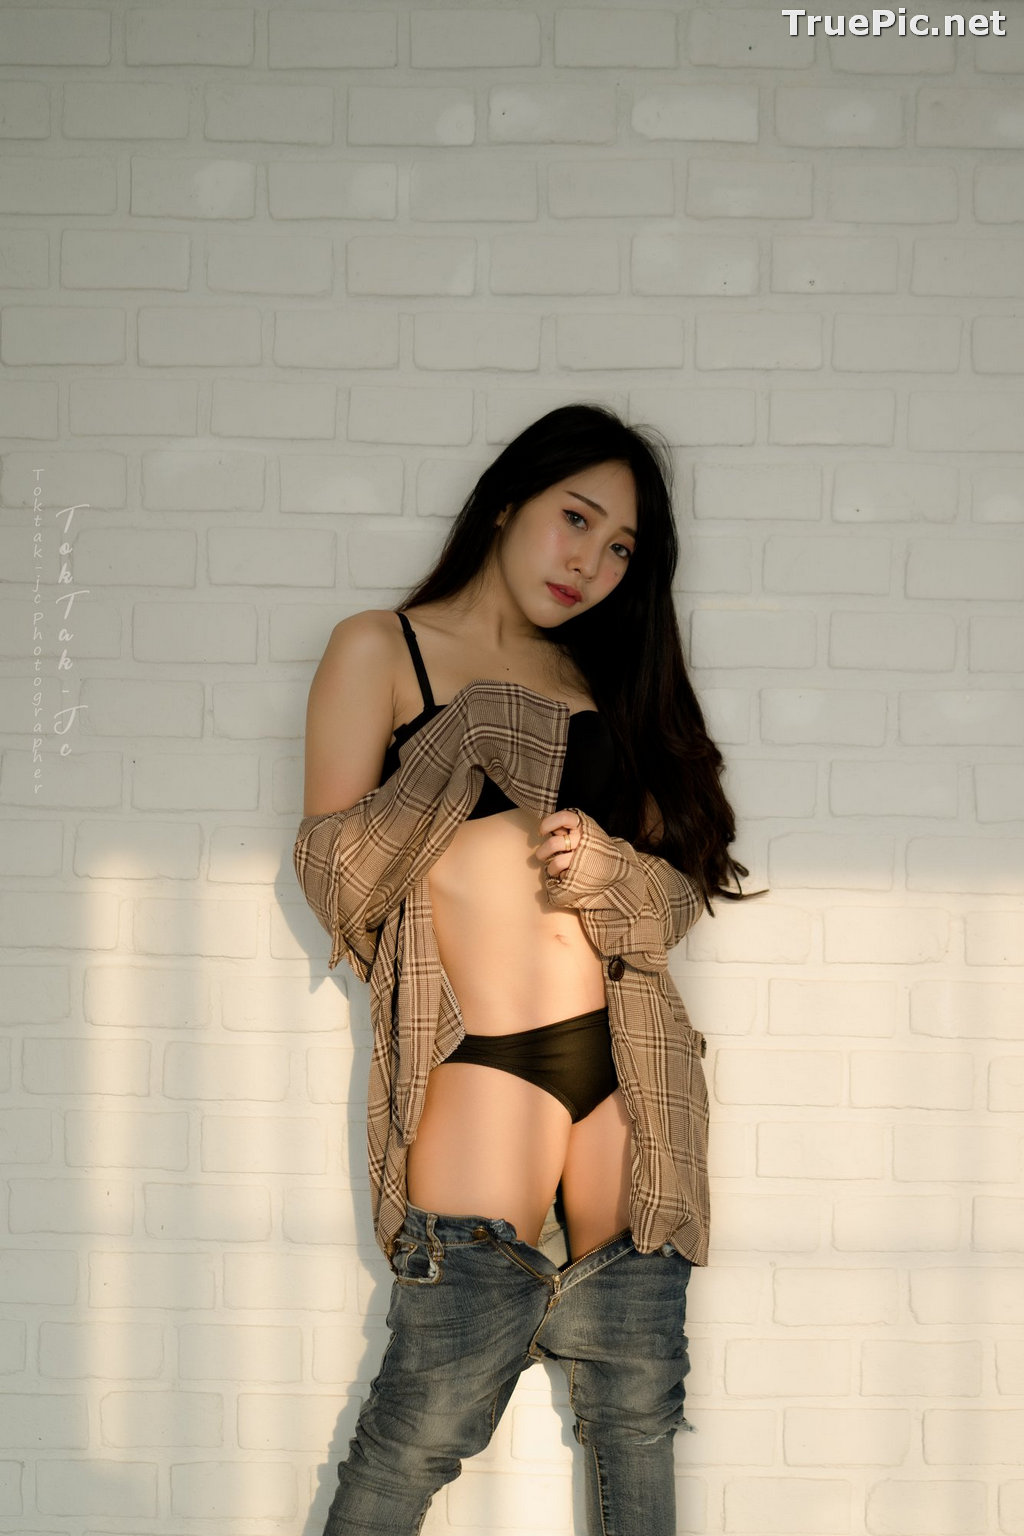 Image Thailand Model - Suneta Ngachalvy - Black Lingerie and Jean - TruePic.net - Picture-19